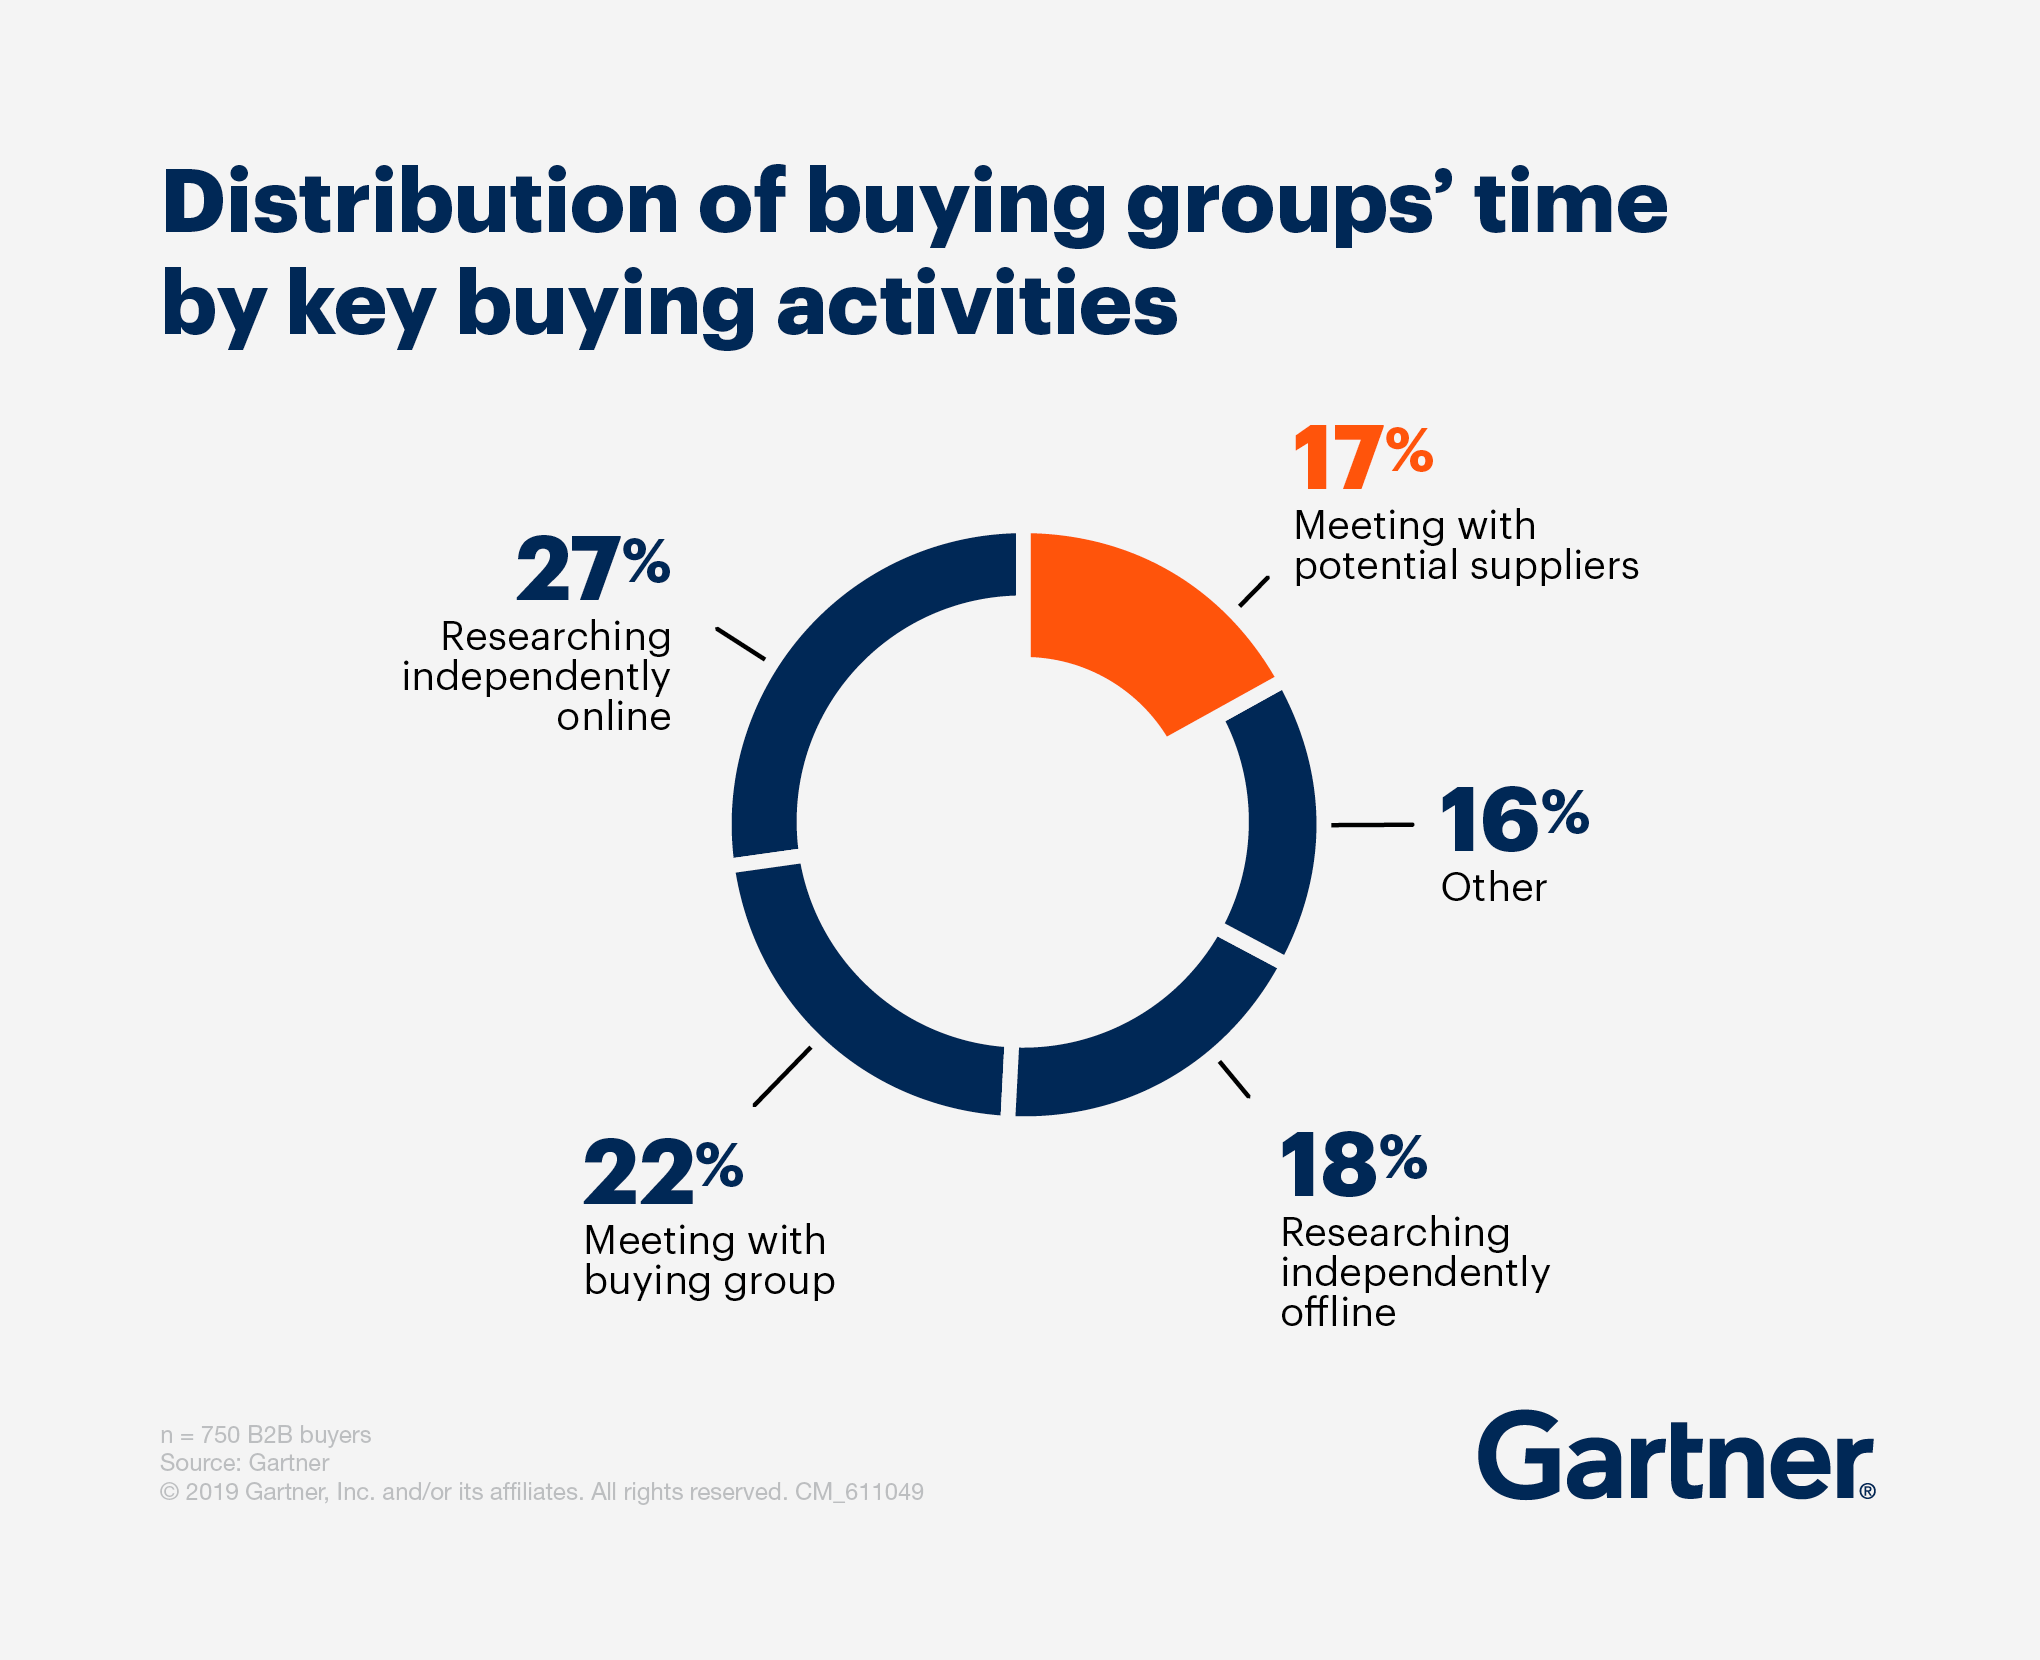 Distribution of buying groups' time by key buying activities. 17% goes towards meeting with potential suppliers.